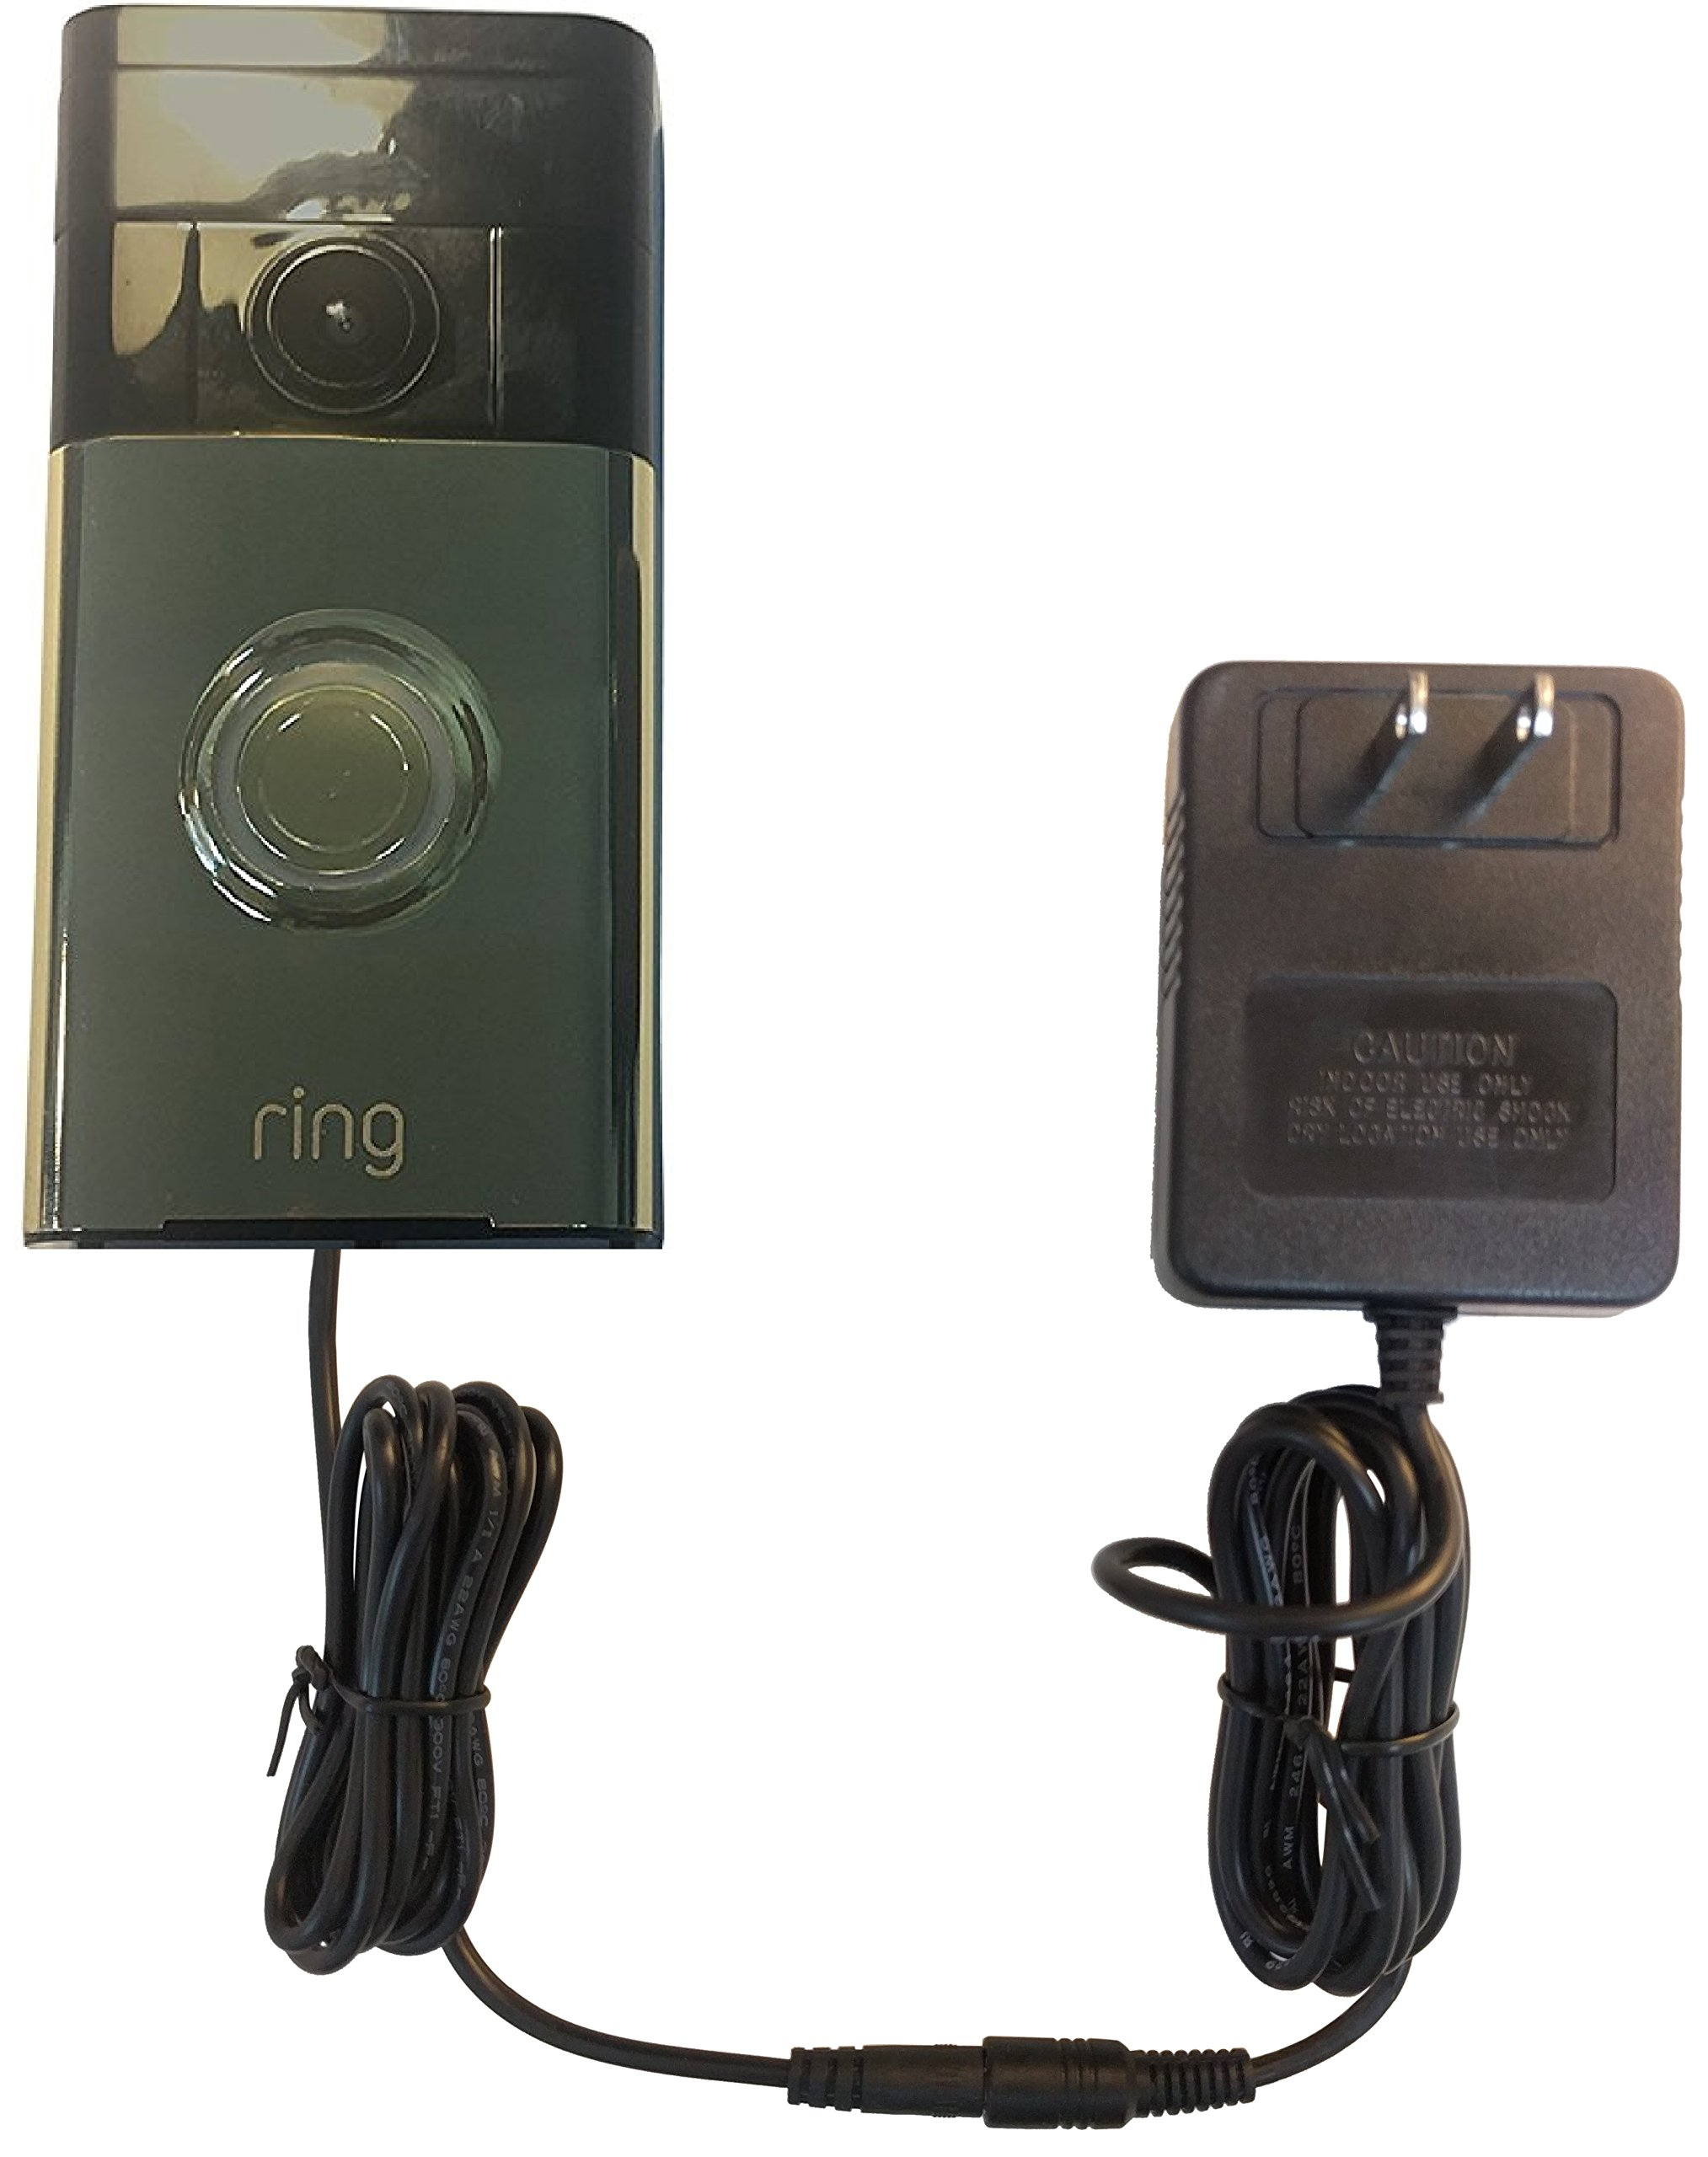 OhmKat Video Doorbell Power Supply - Compatible with Ring Video Doorbell - Needs No Existing Wiring - Battery Charger, Transformer, Adapter, Power Kit & Supply All In One